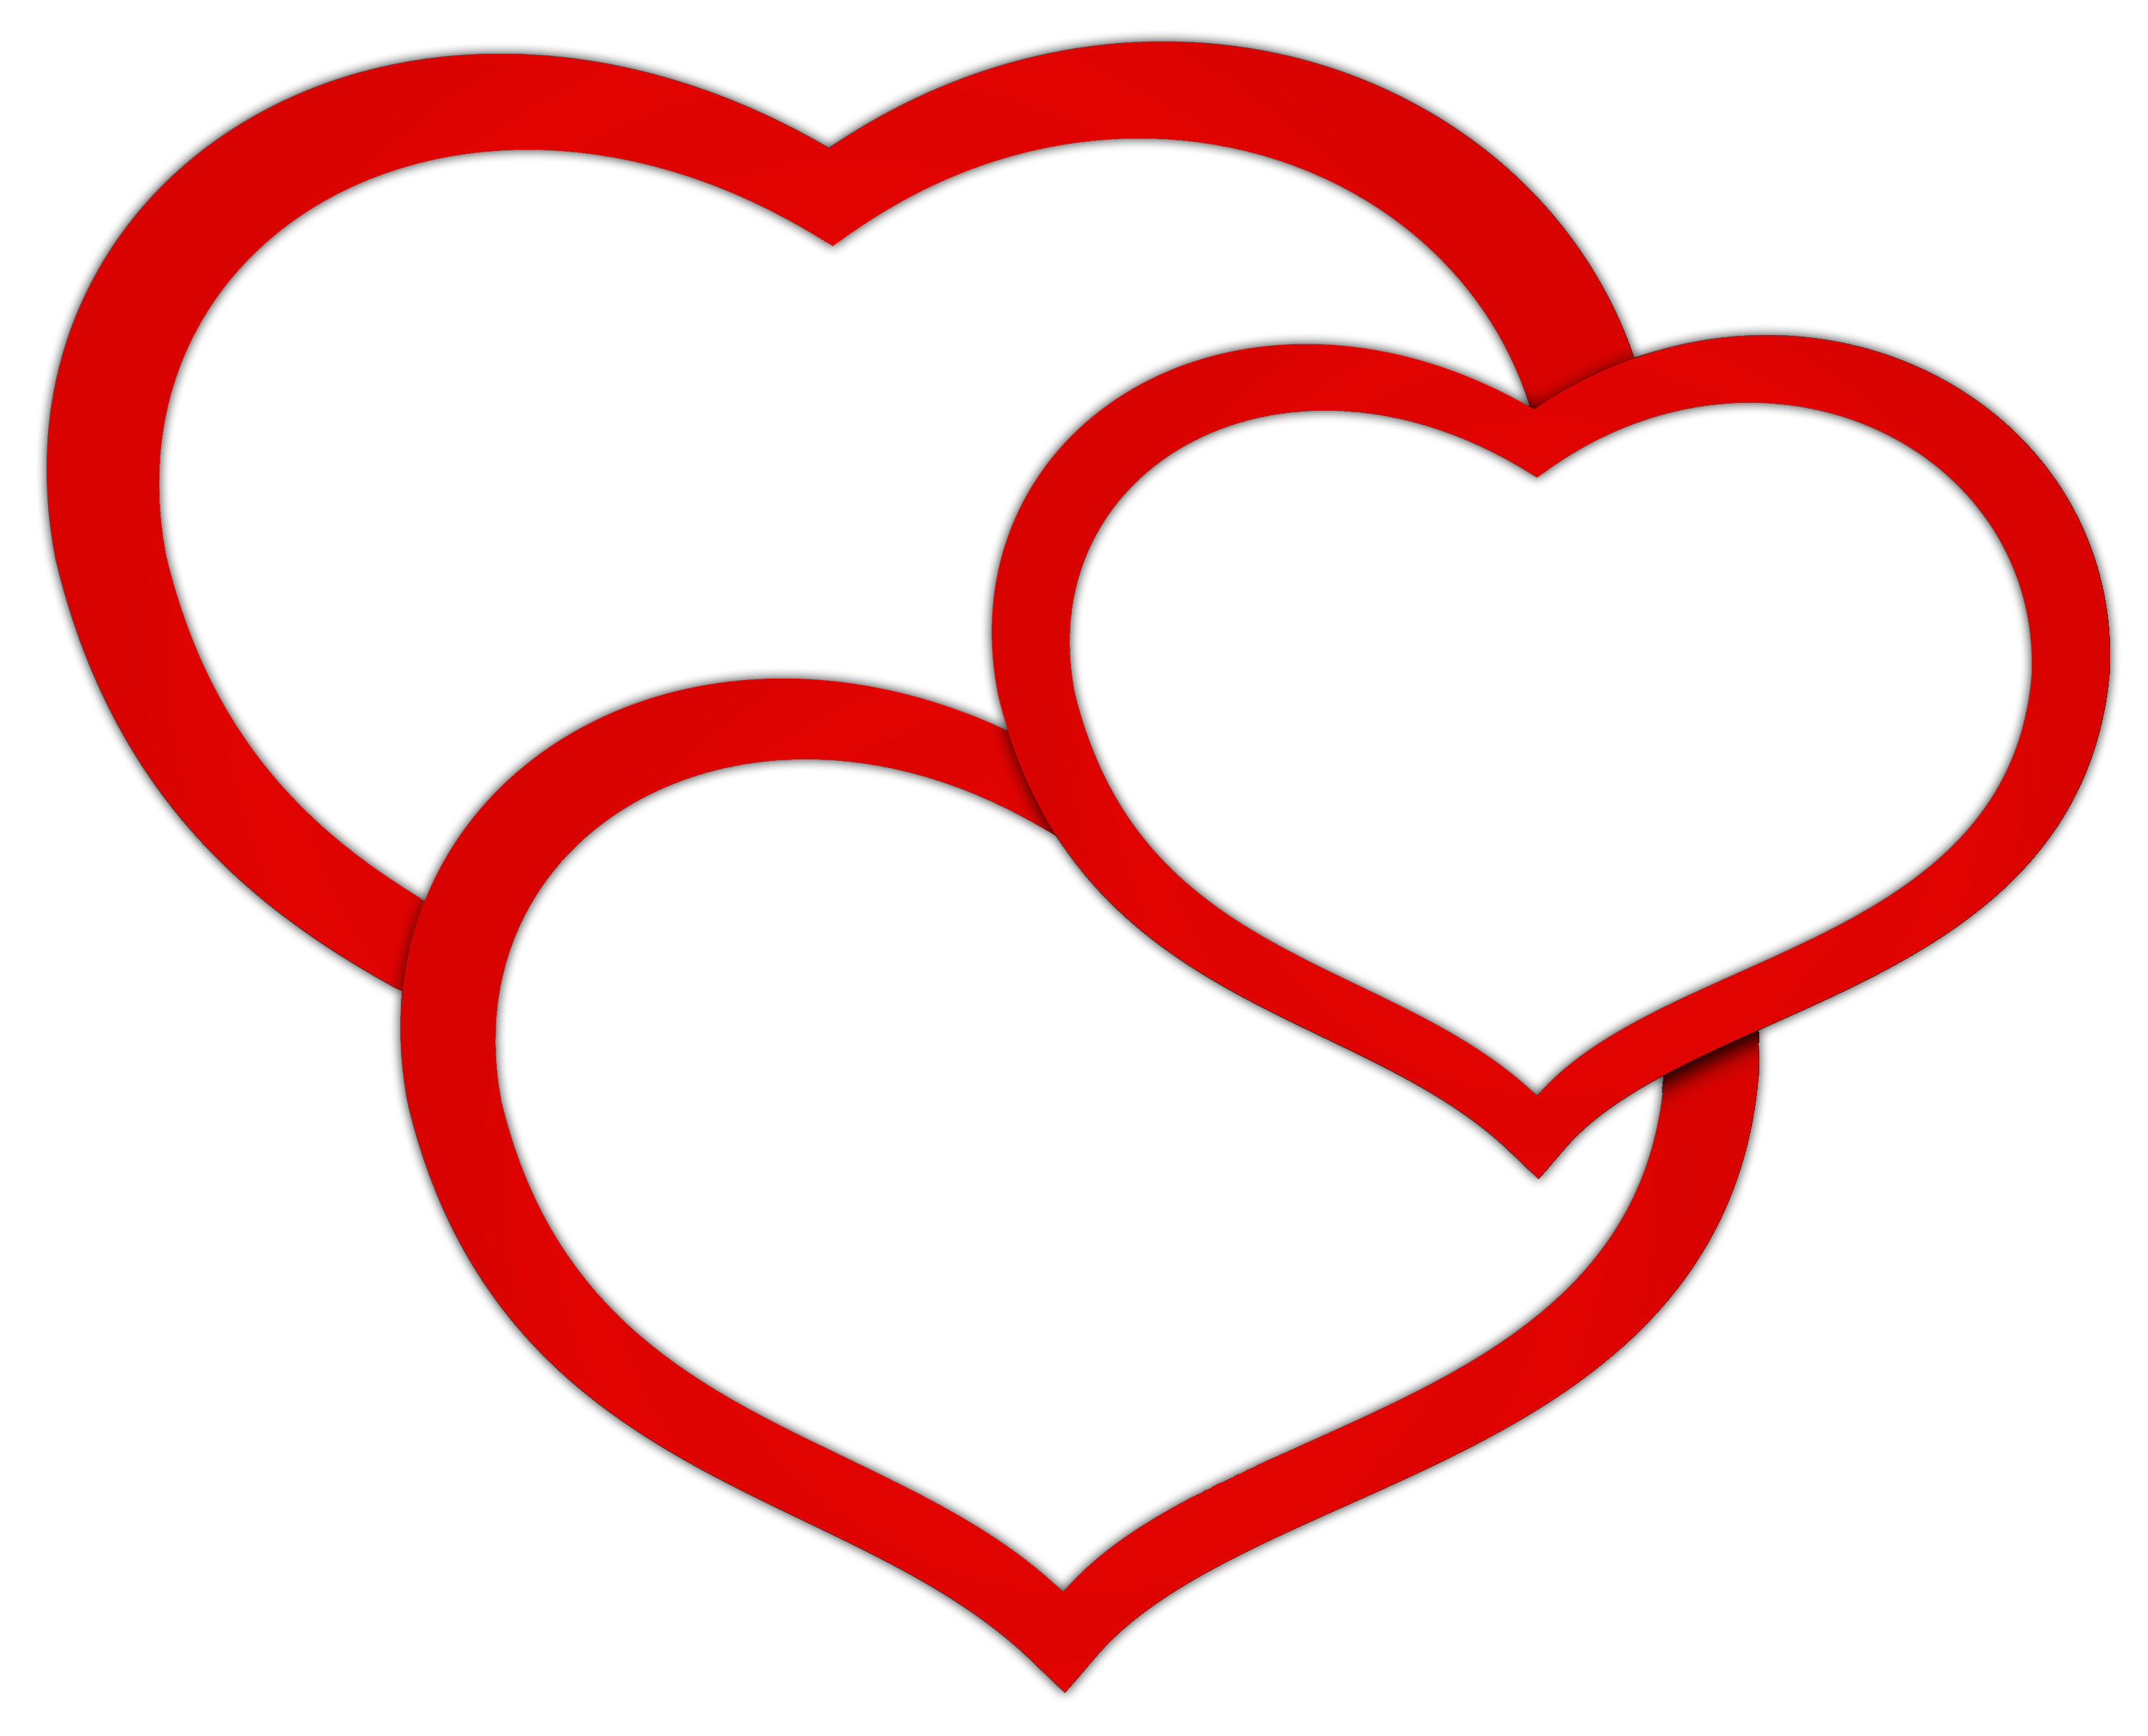 Transparent red triple clipart. Line of hearts png